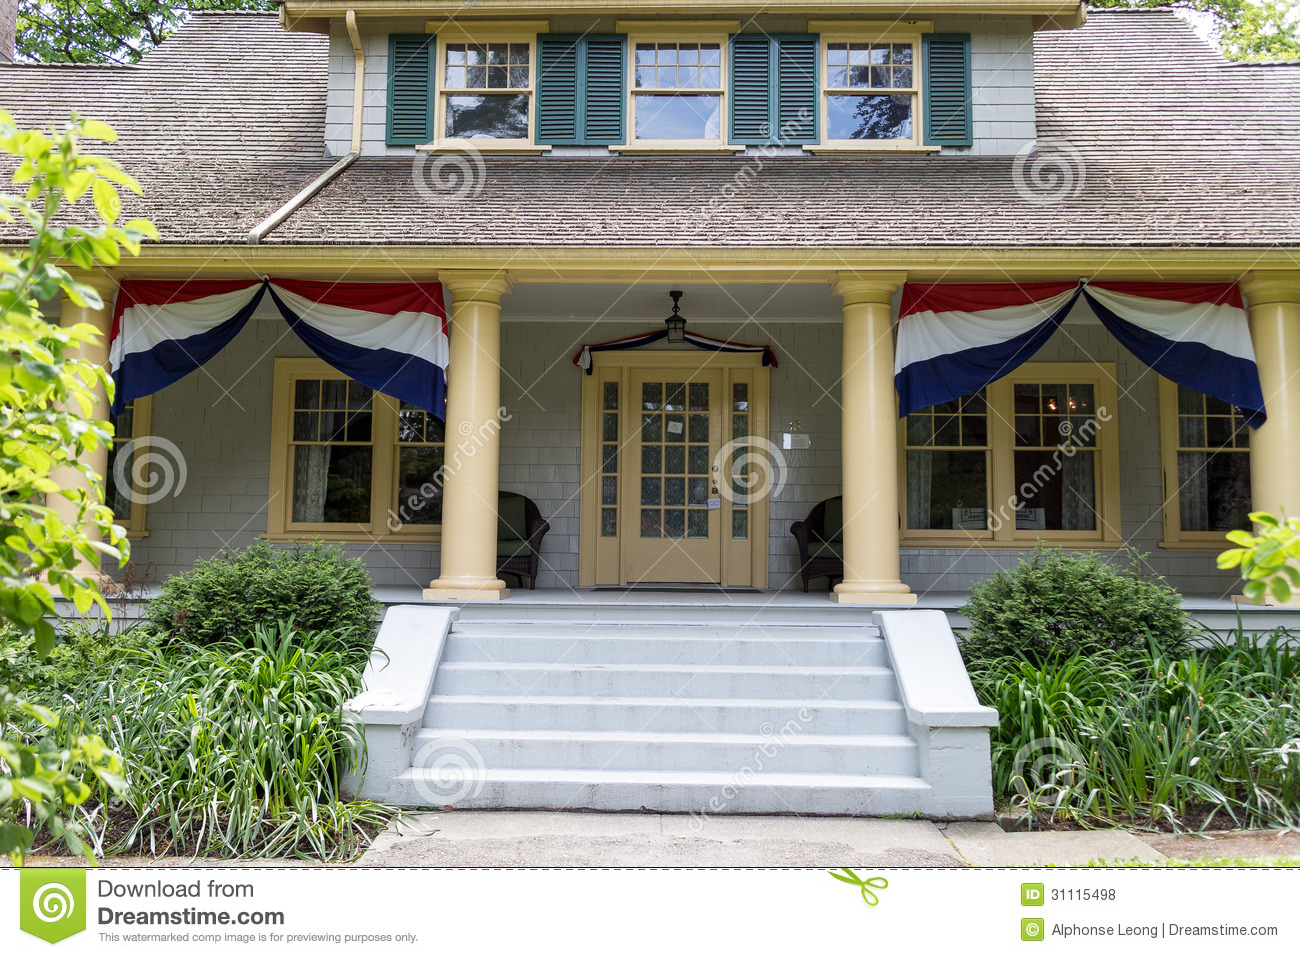 Vintage old house royalty free stock photos image 31115498 for Old house classics